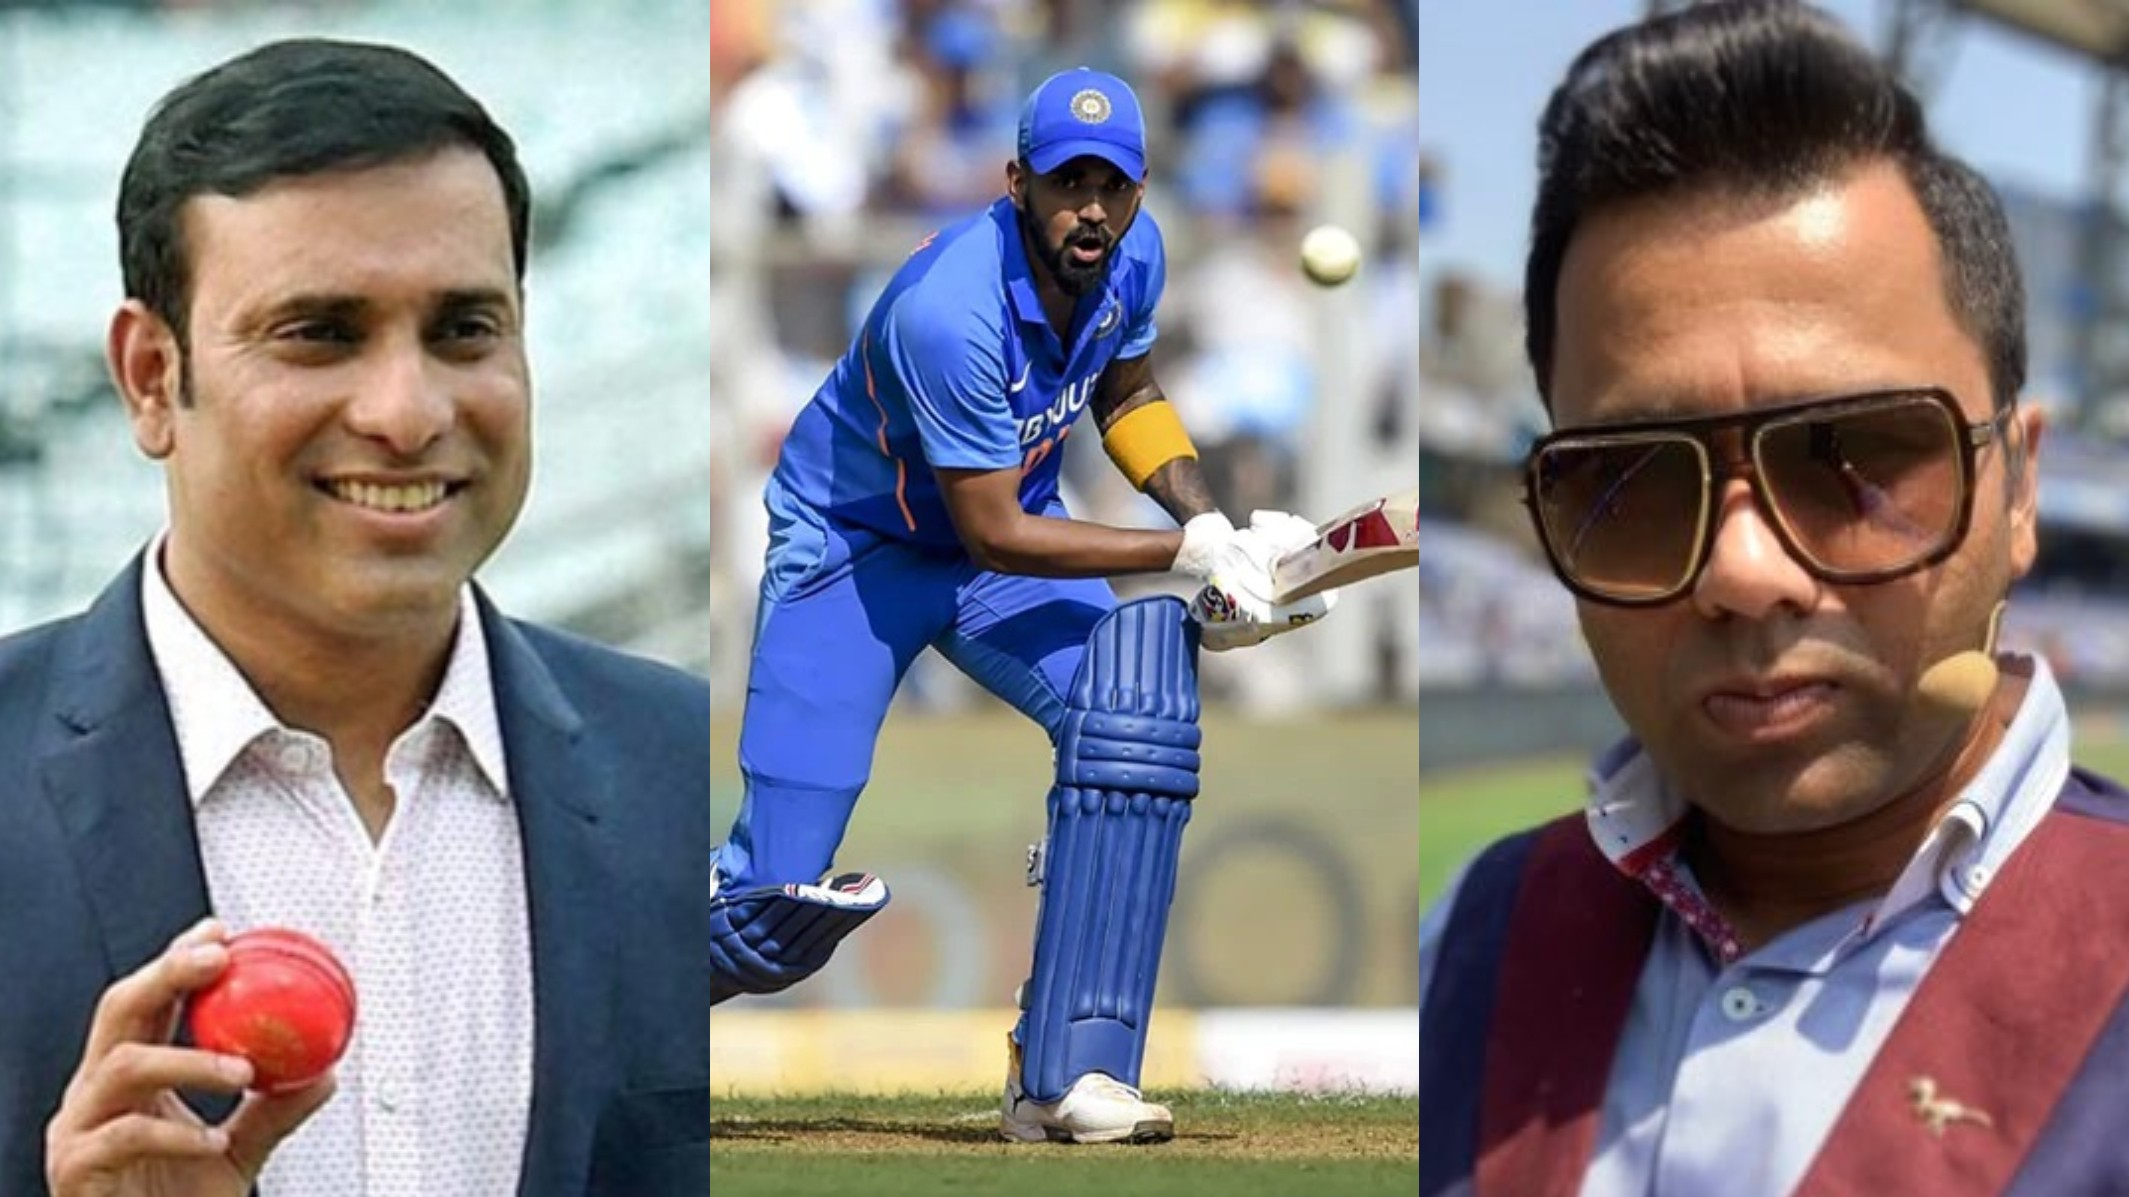 IND v AUS 2020: Cricket fraternity reacts as KL Rahul's magnificent 80 takes India to 340/6 in Rajkot ODI